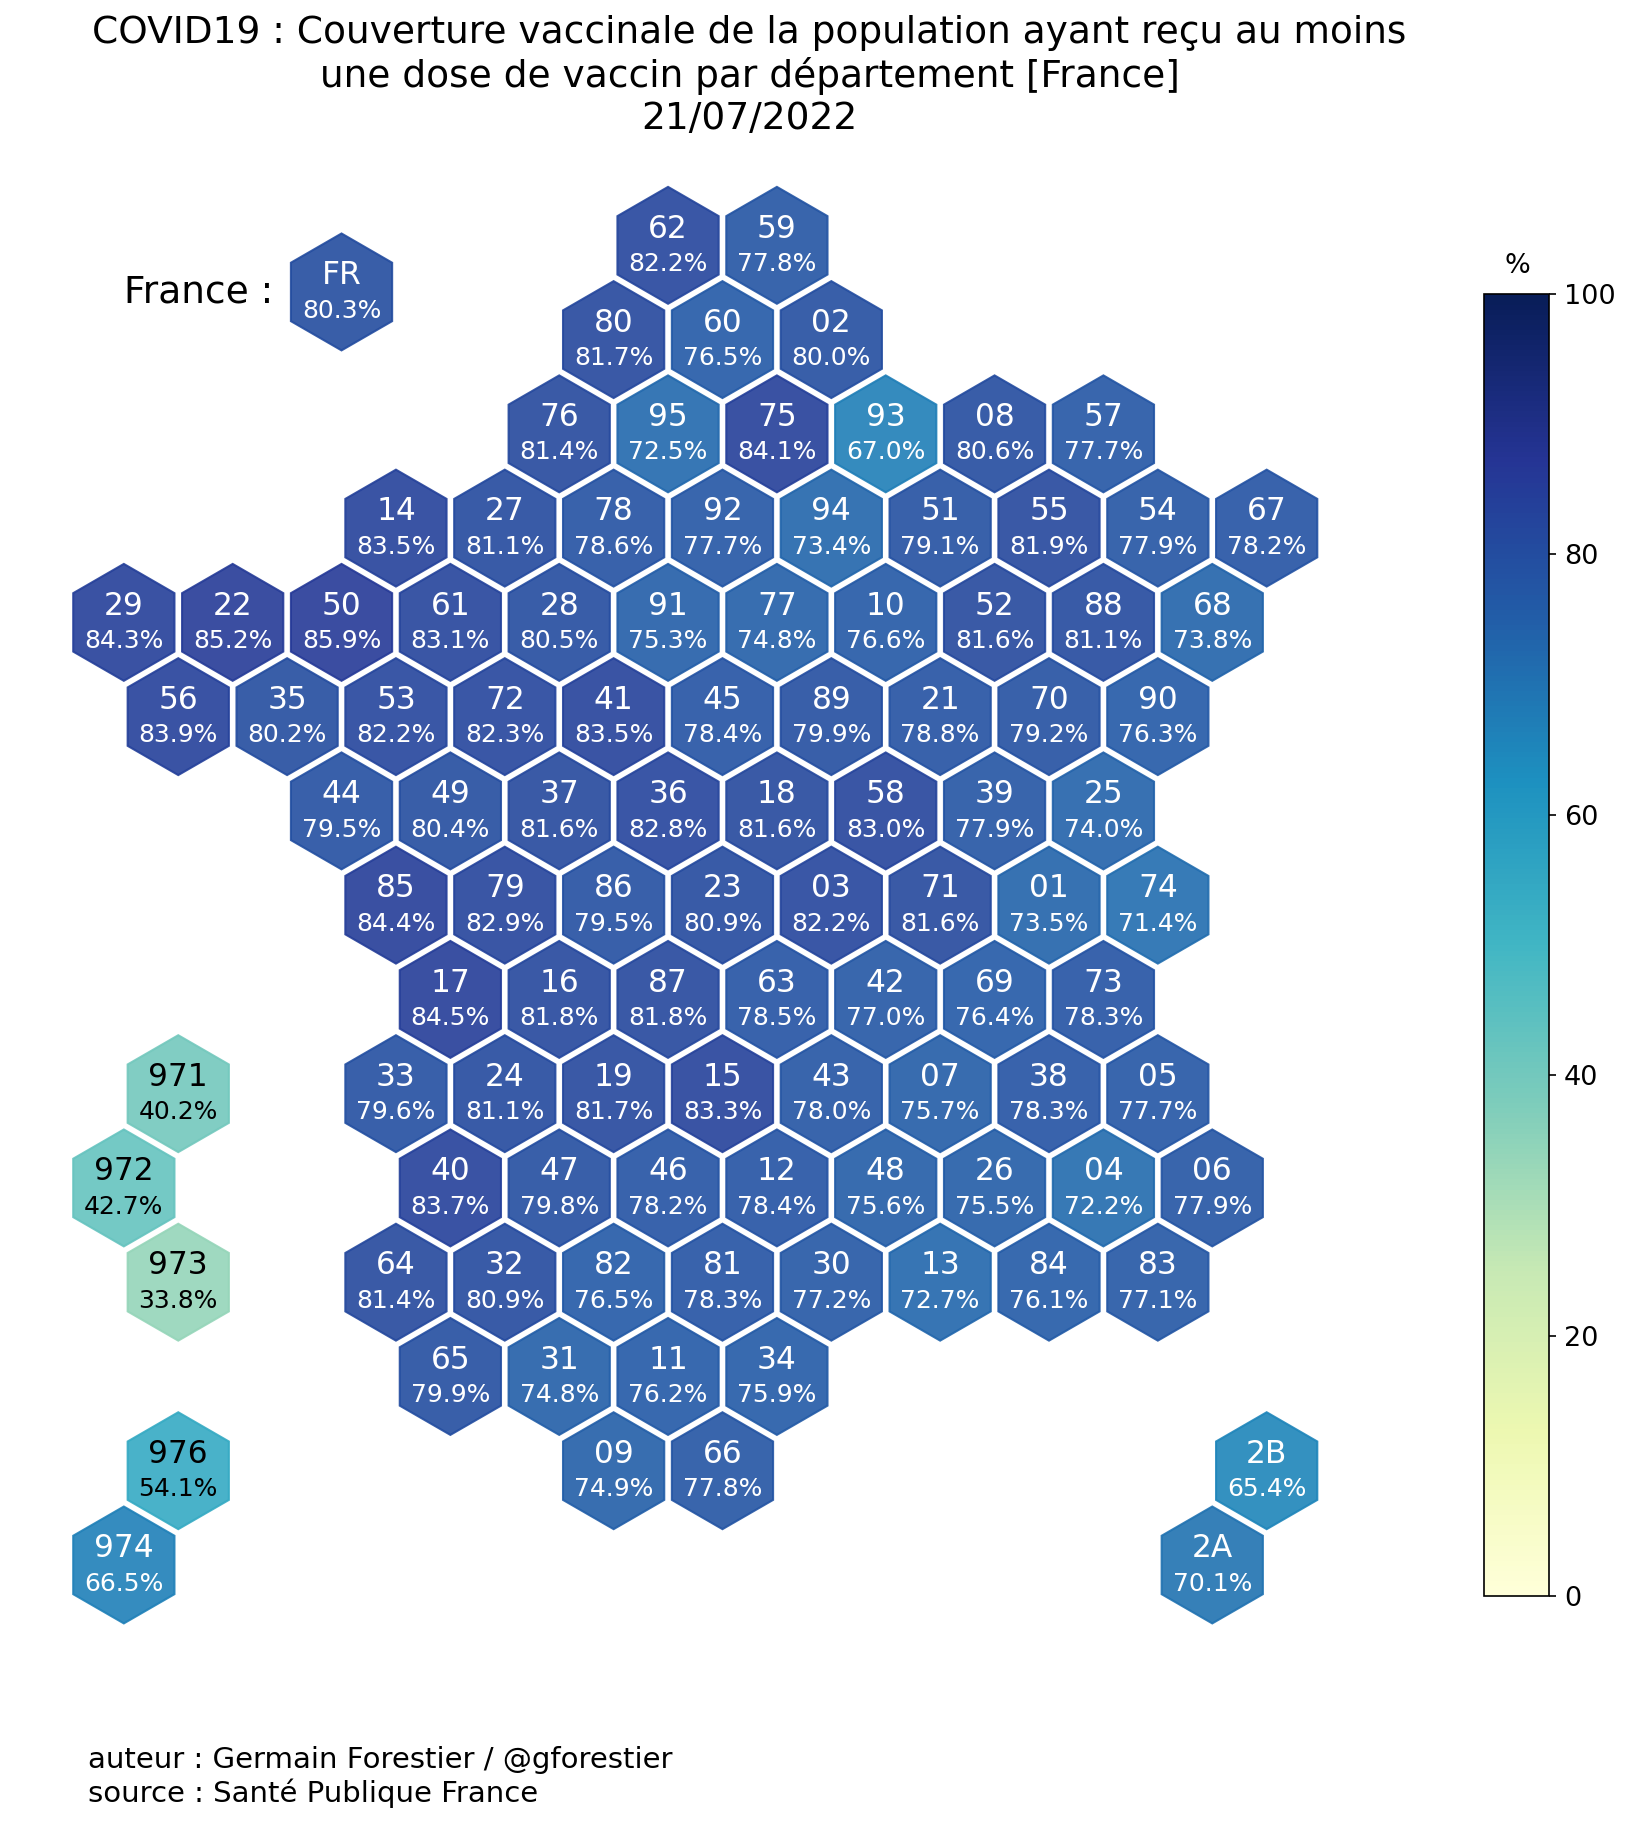 https://germain-forestier.info/covid/vaccin/hex-map-doses-pct-dpt.png